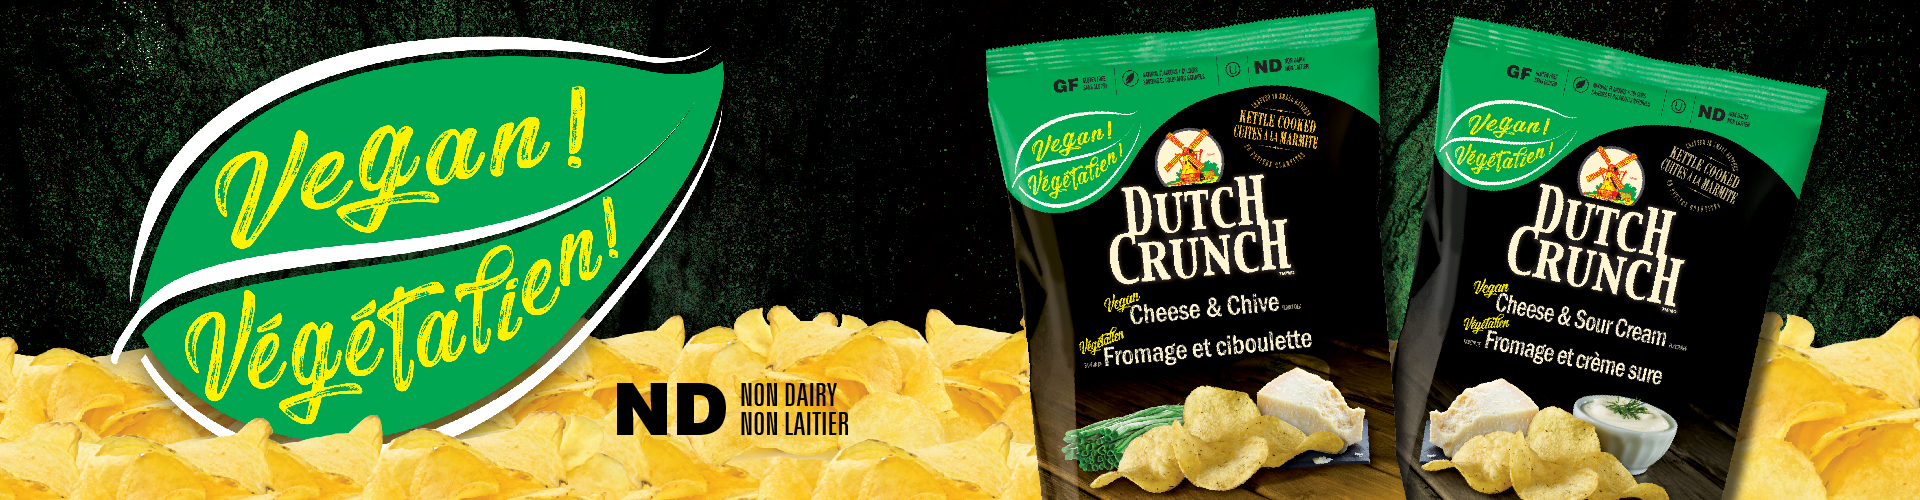 Dutch Crunch Vegan!